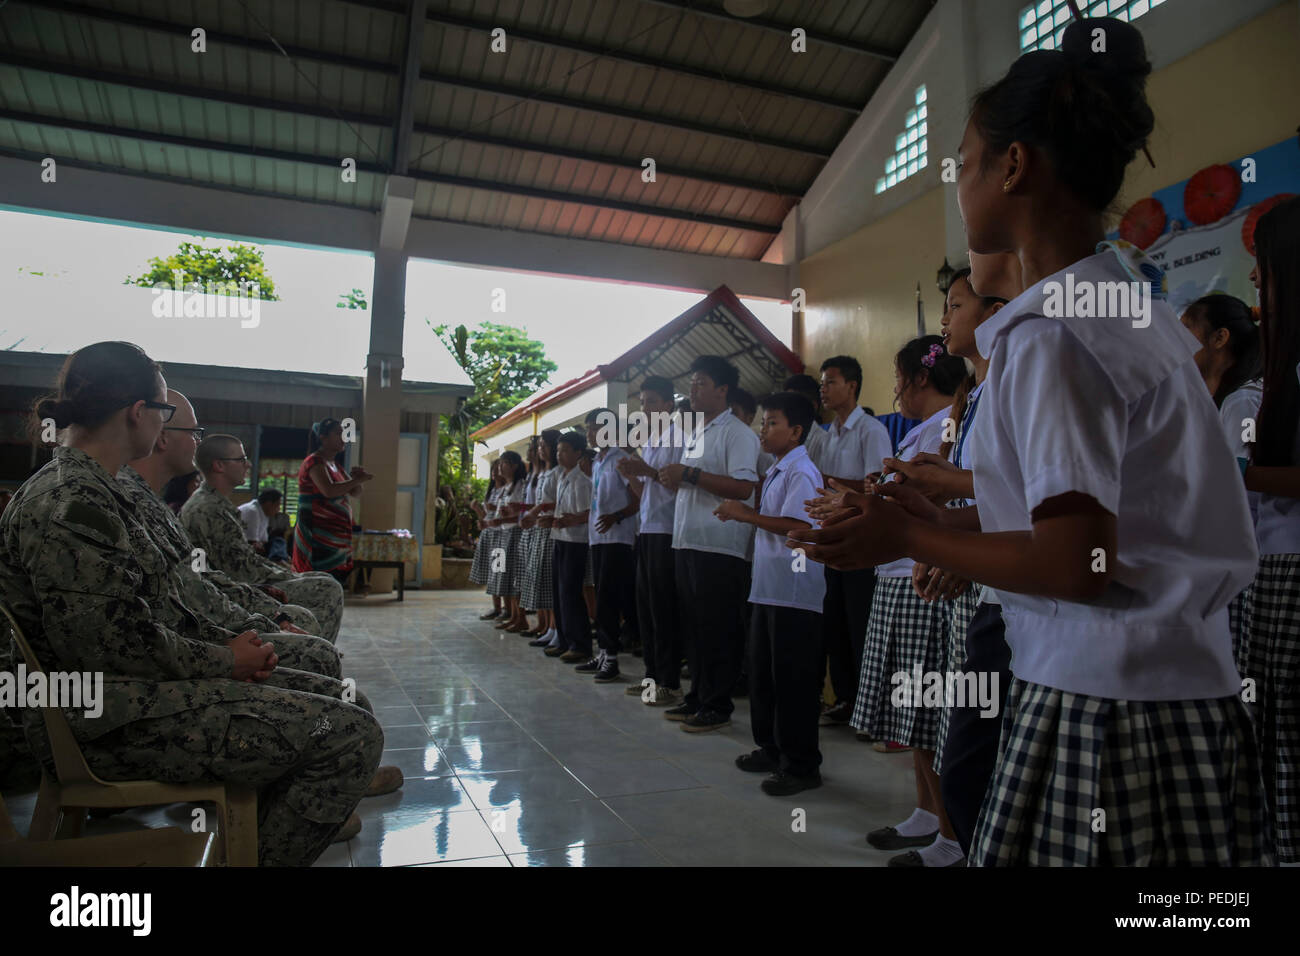 150810-M-GO800-592 SAN FERNANDO CITY, Philippines (Aug. 10, 2015) – Students at Caba National High School sing in appreciation for the work done by the Pacific Partnership 2015 team during a ribbon cutting ceremony Aug. 10. Task Force Forager will be in the Philippines until Aug. 15 providing medical and engineering assistance. Task Force Forager, embarked aboard the Military Sealift Command joint high speed vessel USNS Millinocket (JHSV 3) is serving as the secondary platform for Pacific Partnership, led by an expeditionary command element from the Navy's 30th Naval Construction Regiment (30  - Stock Image